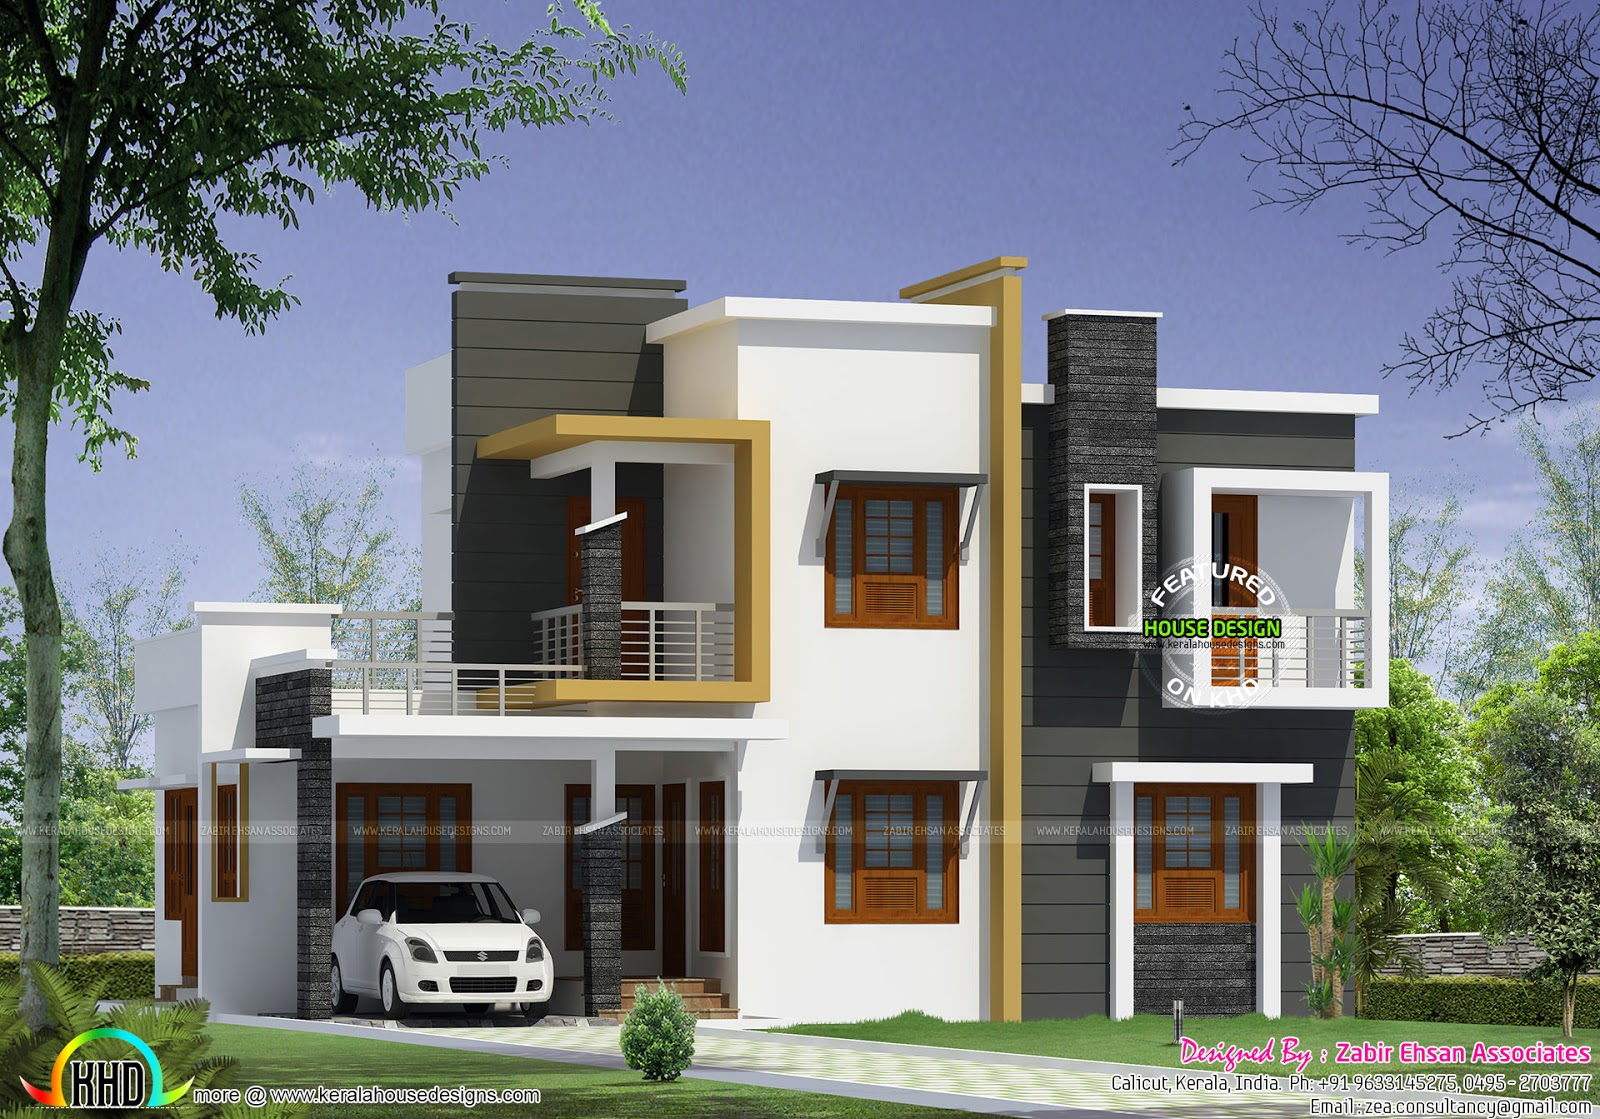 Box type modern house plan kerala home design and floor for Modern box house design